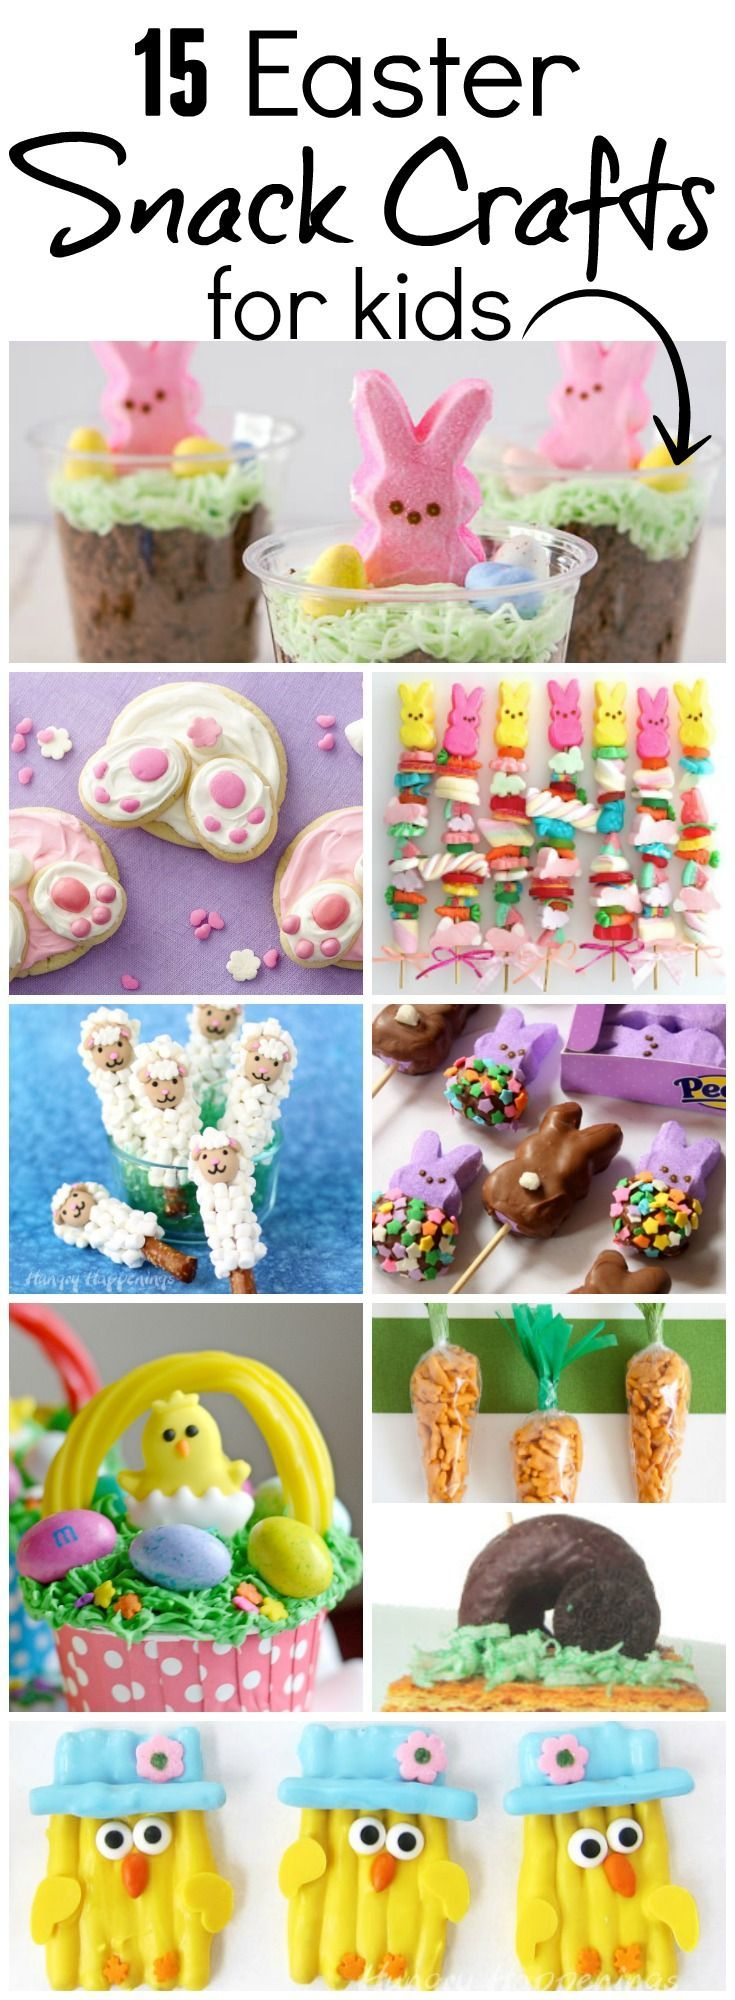 A collection of 15 of the most delicious and fun edible crafts for Easter on Pinterest!